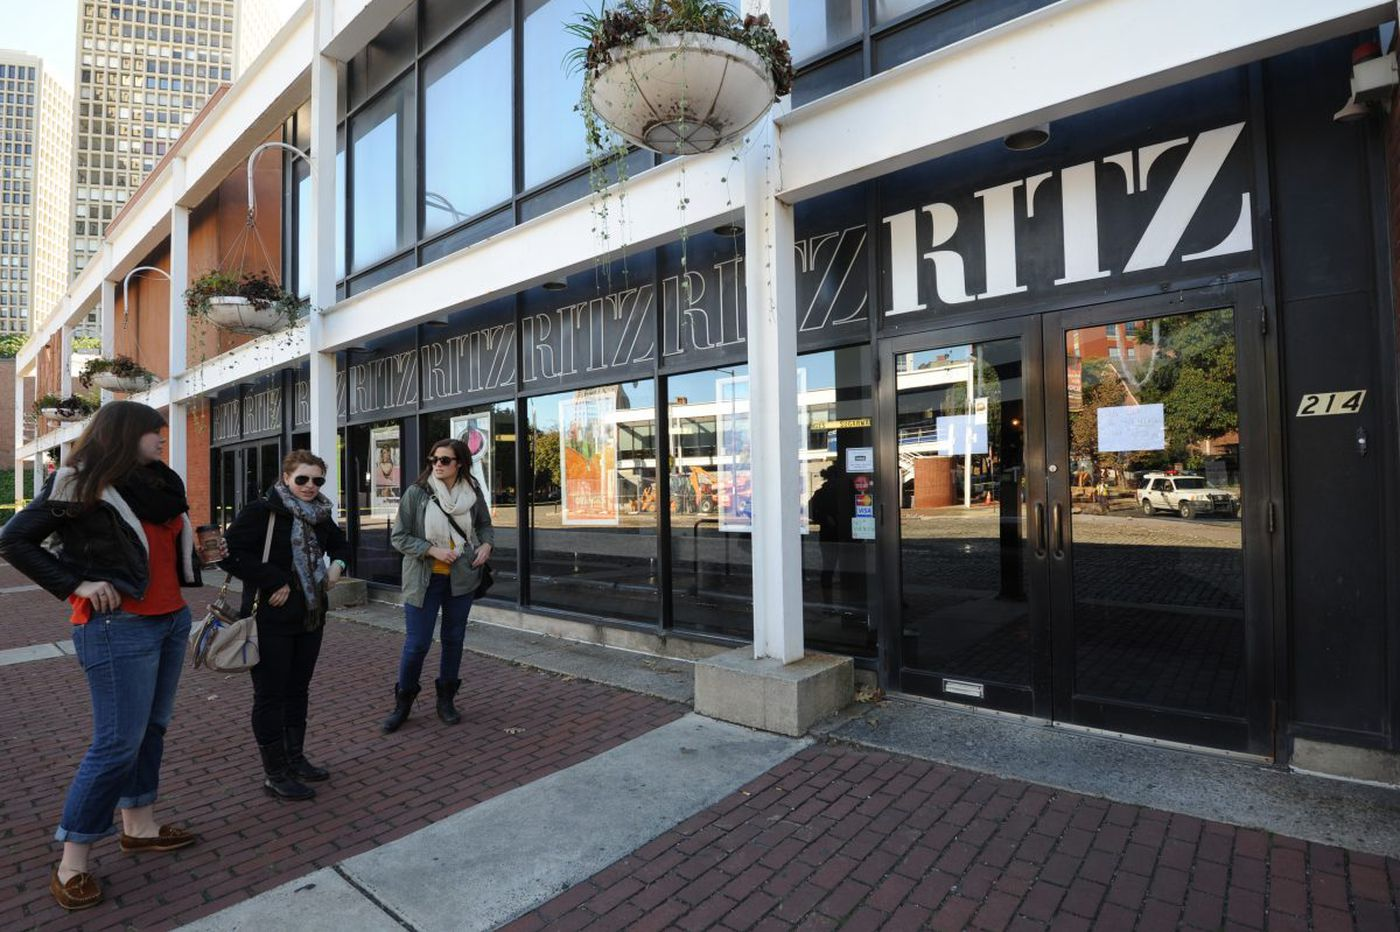 Coming soon to the Ritz: Amazon ownership? Maybe, report says.